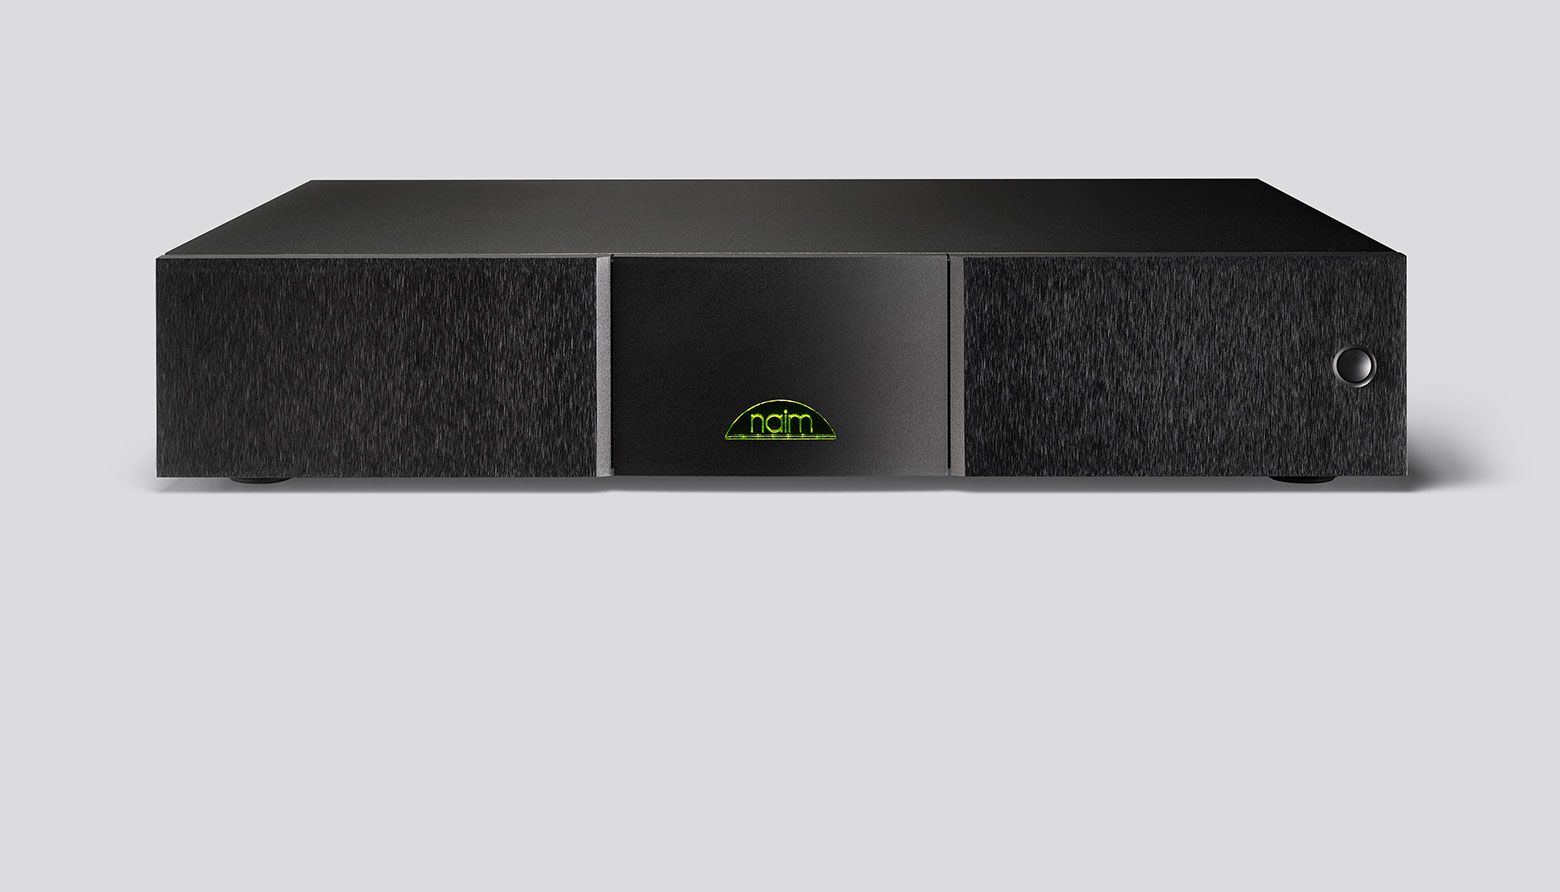 NAP 200 power amplifier